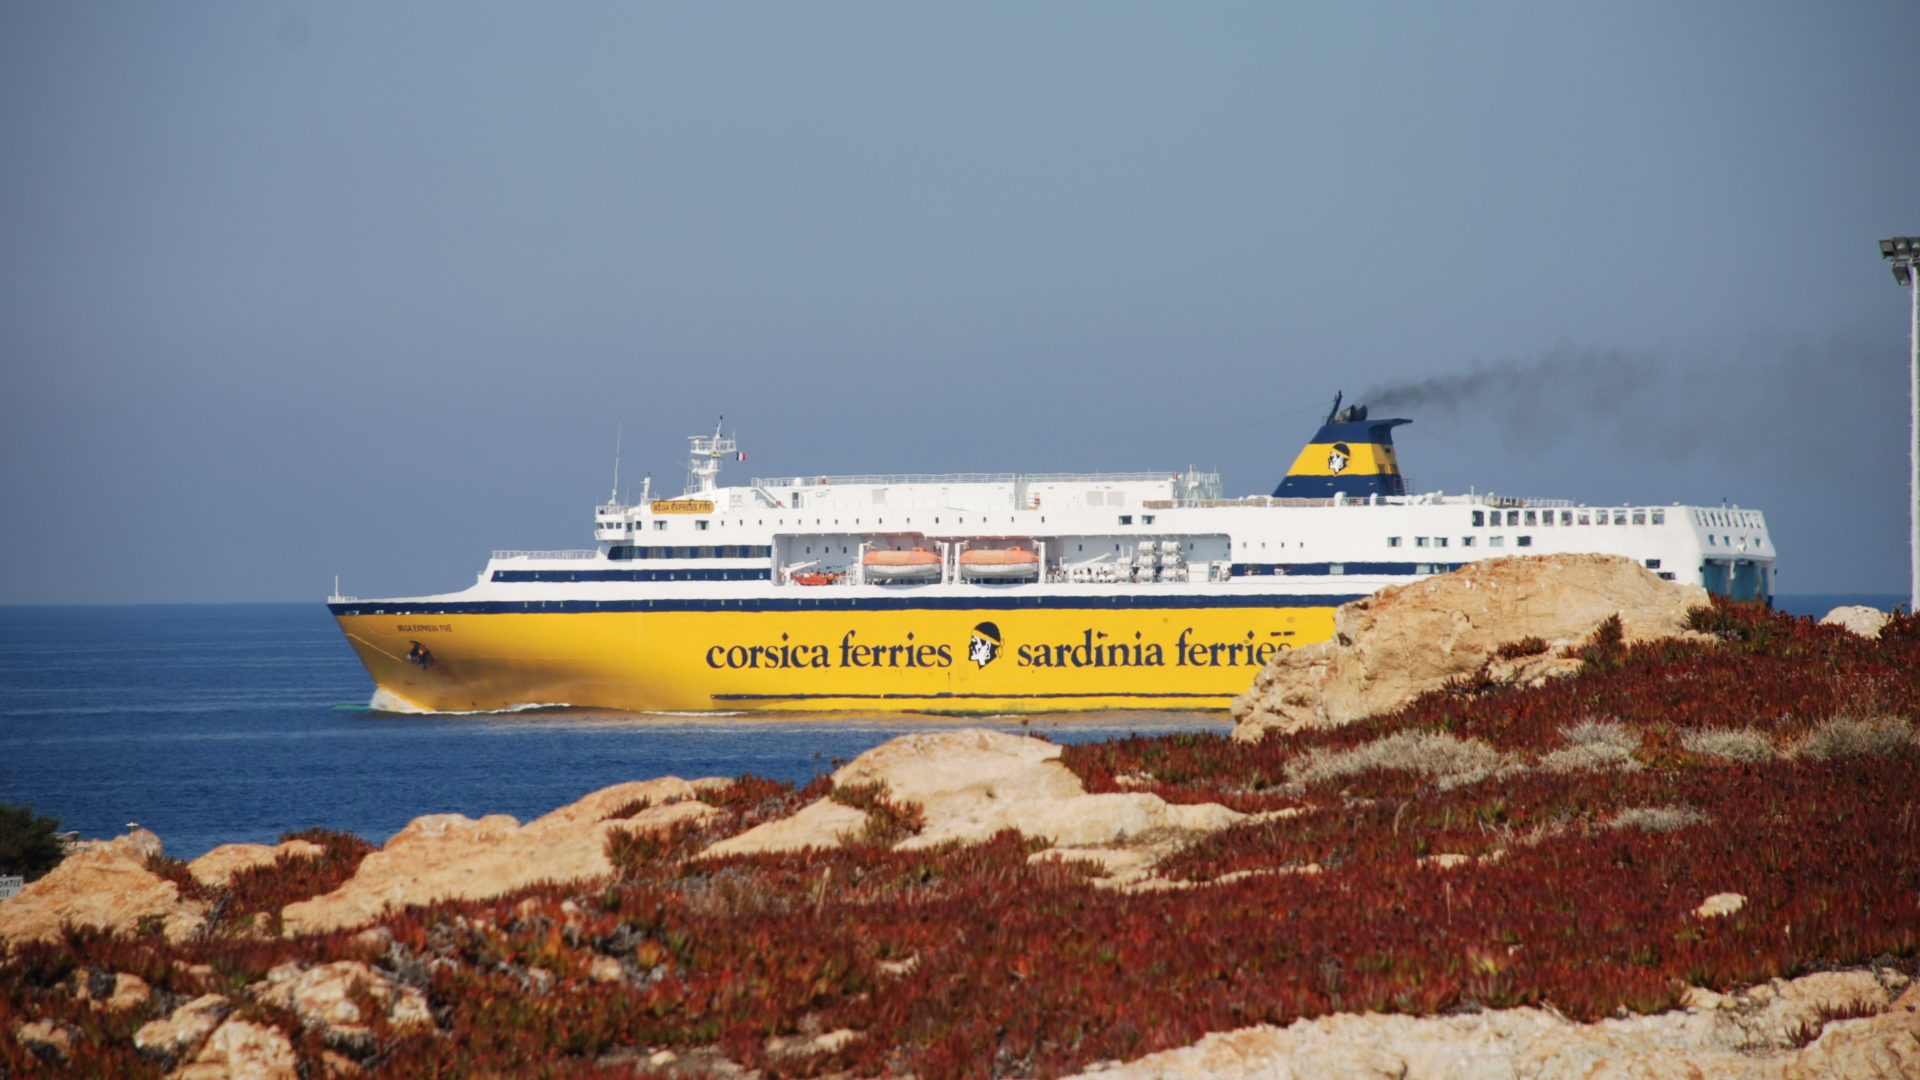 ferries.andreaskiener.com